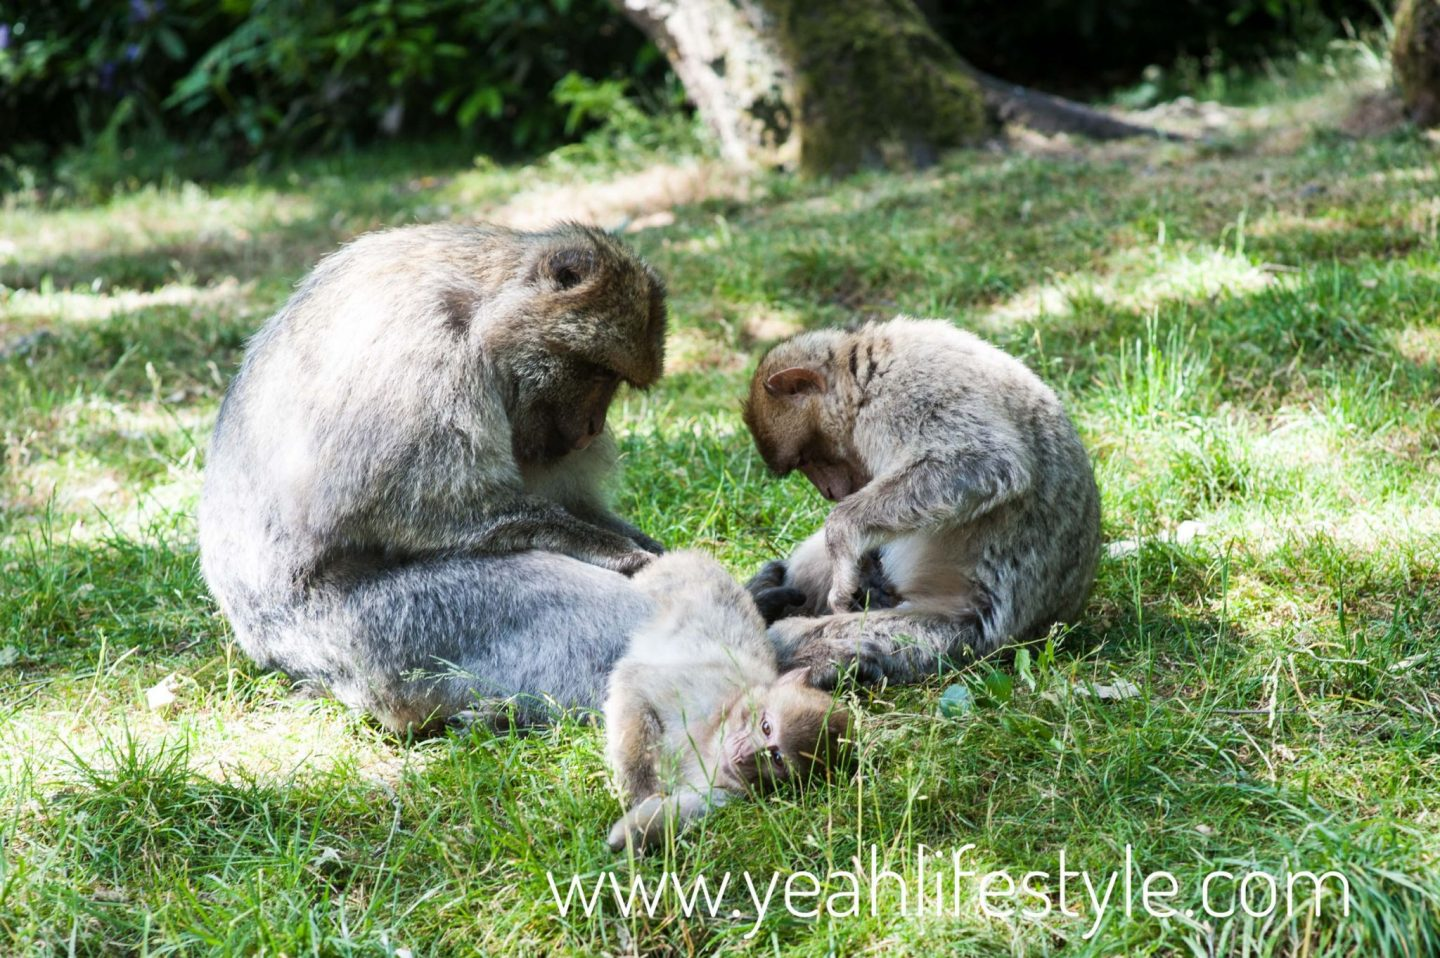 trentham-monkey-forest-travel-blogger-review-monkey-Barbary-macaque-family